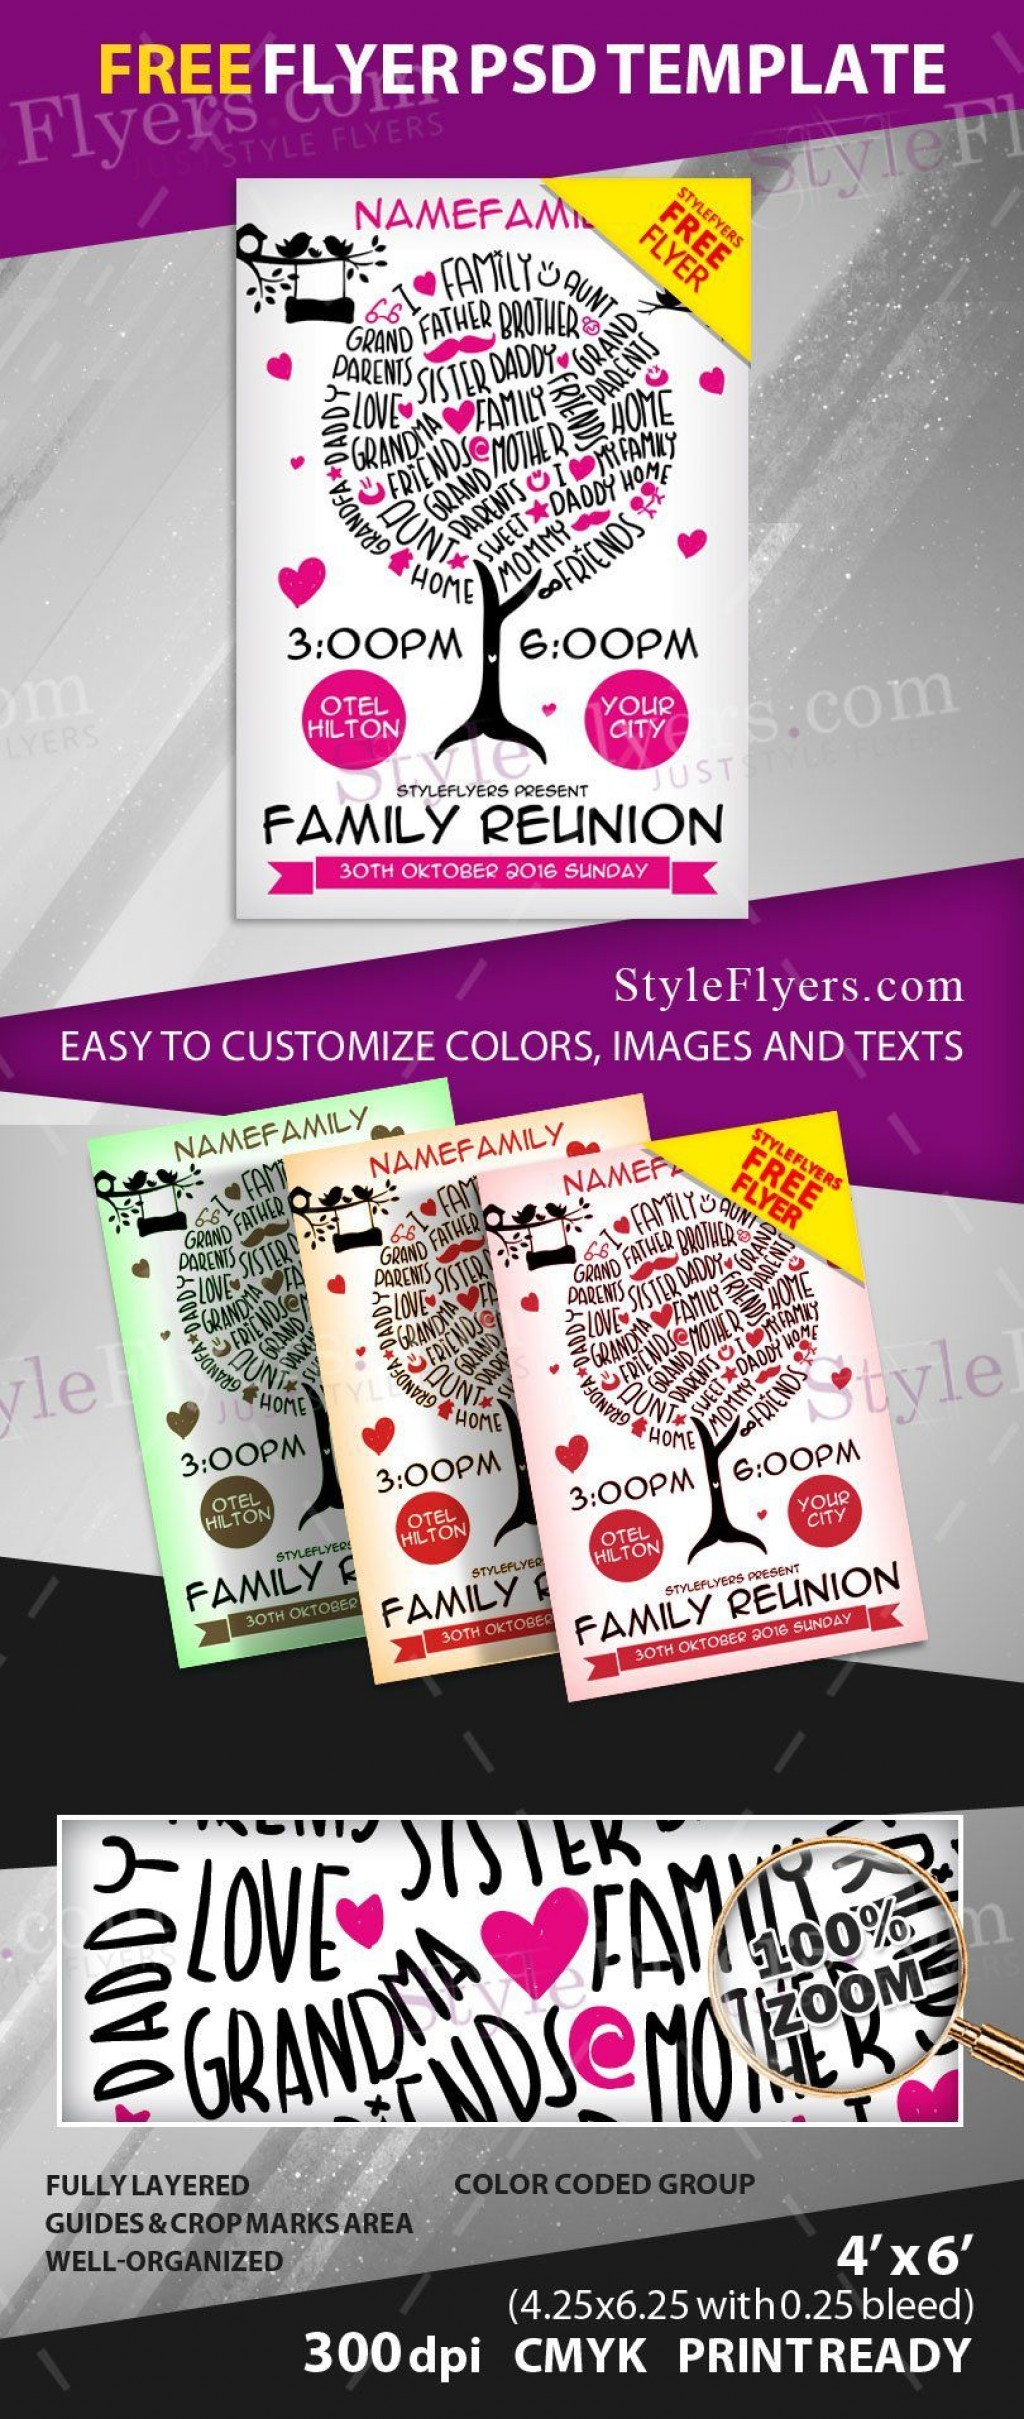 009 Unbelievable Family Reunion Flyer Template Inspiration  Templates Free ForLarge